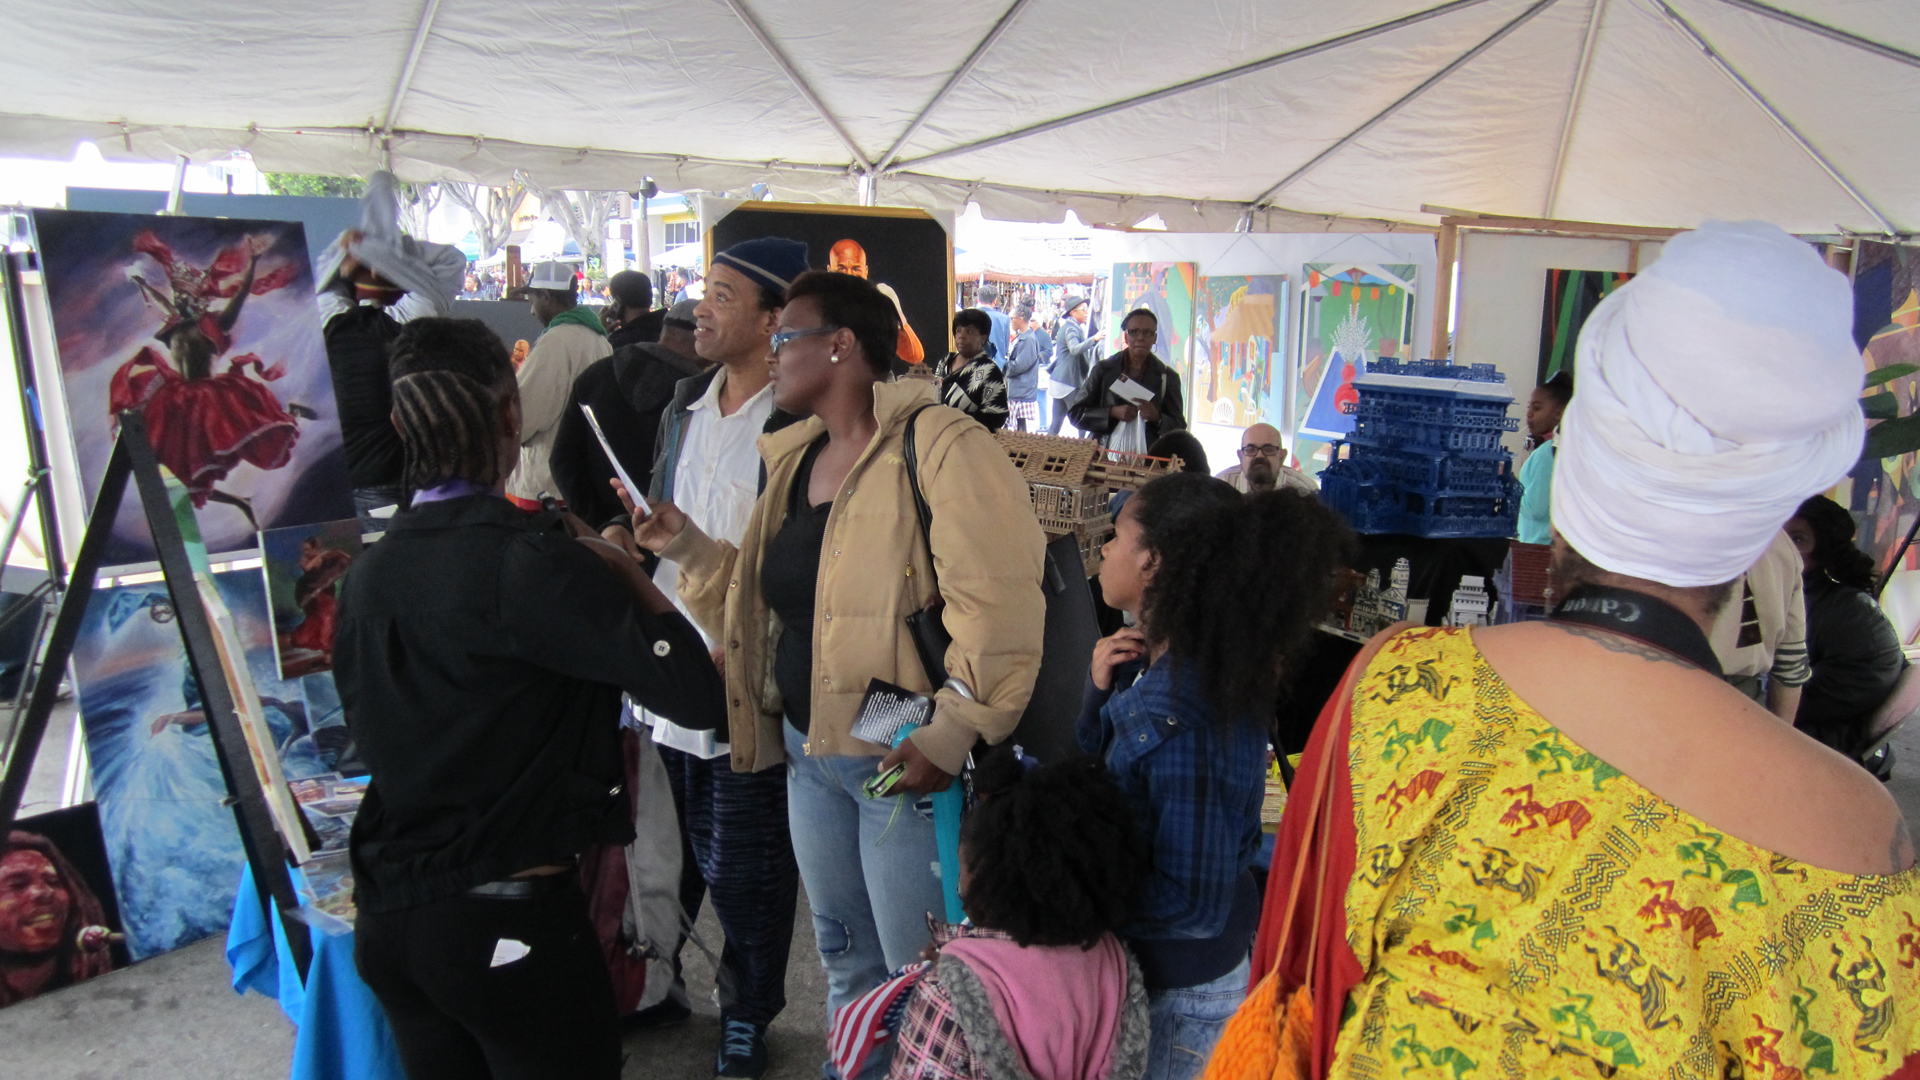 Martin Luther King Parade Art Exhibit at Leimert Park  MLK Kingdom Parade Art Exhibit 19201080featuredbanner1